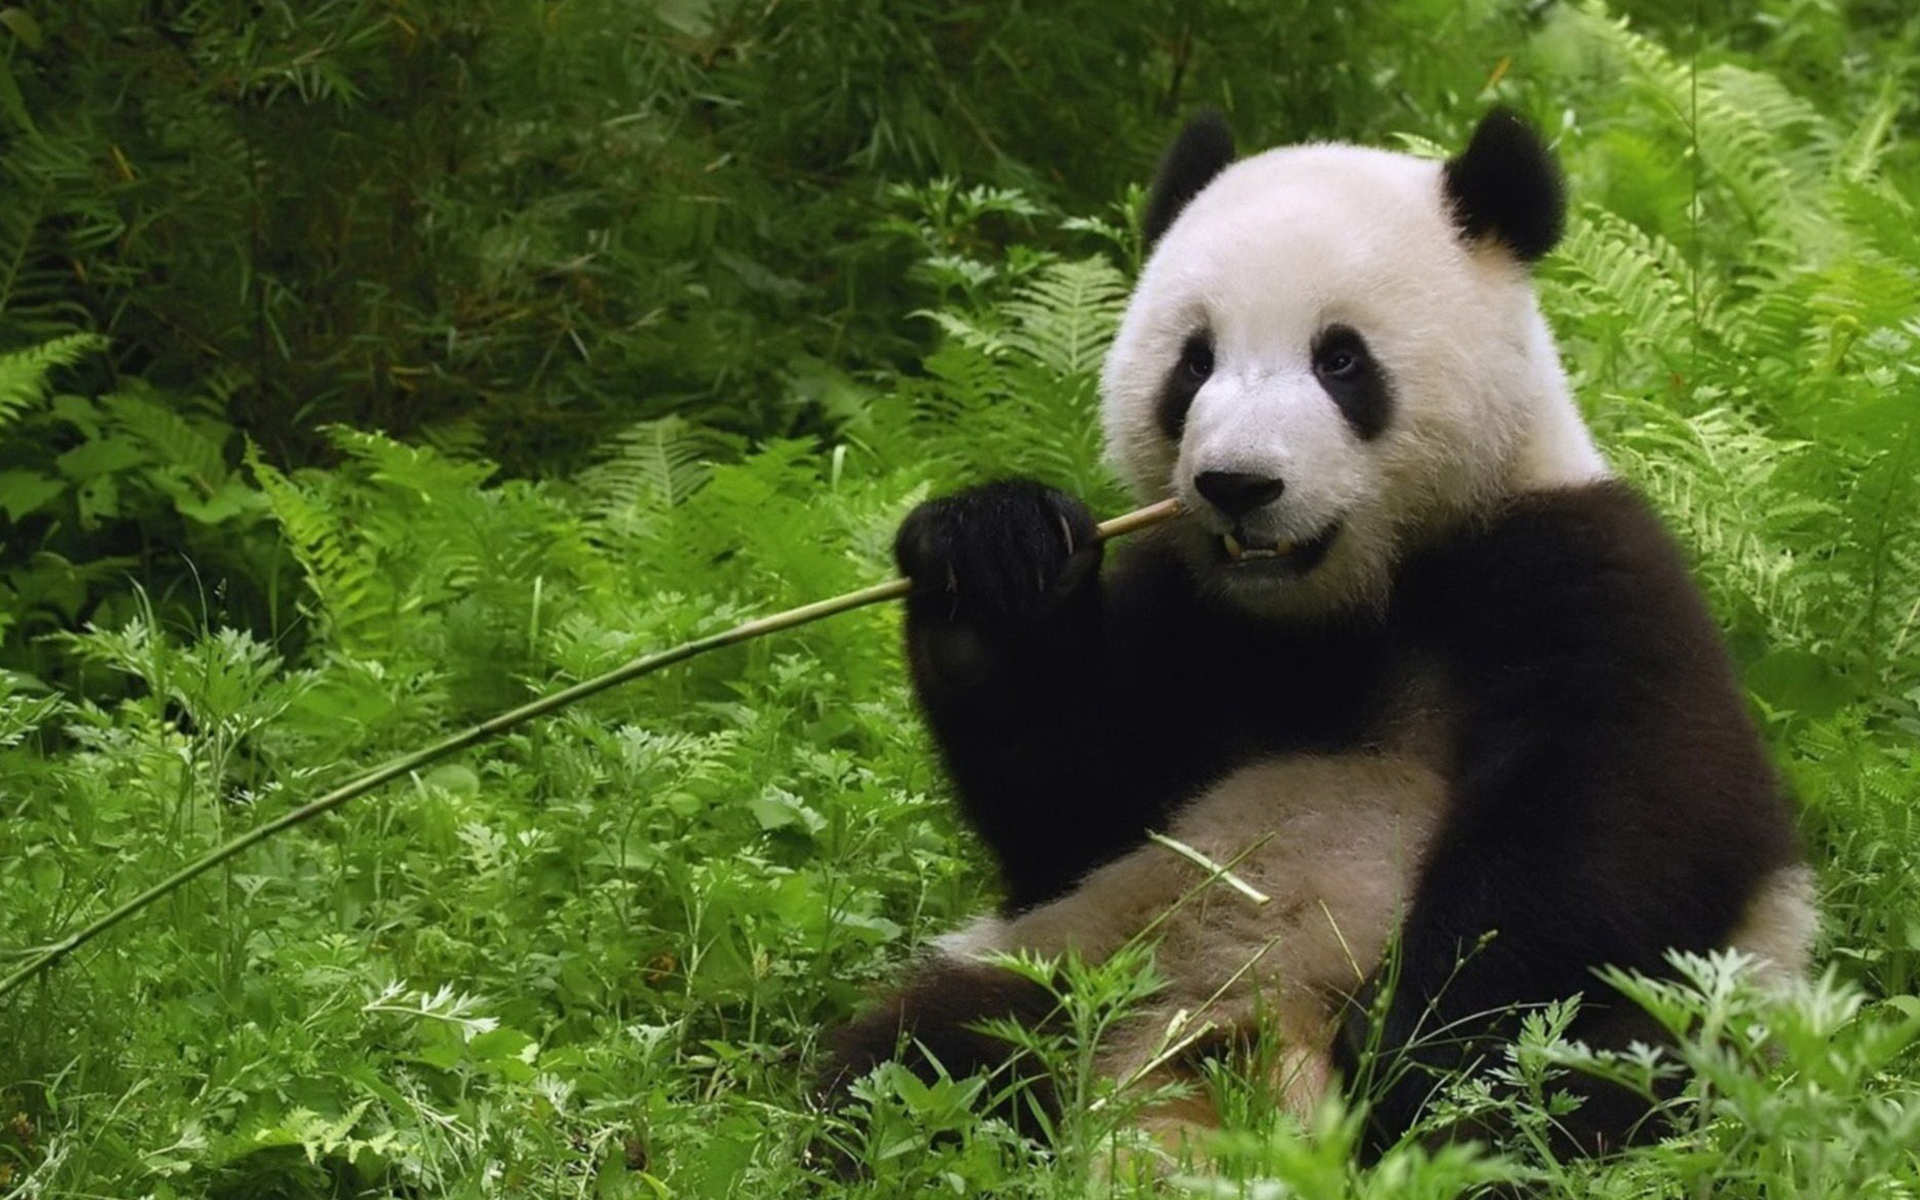 PANDA EATING BAMBOO!